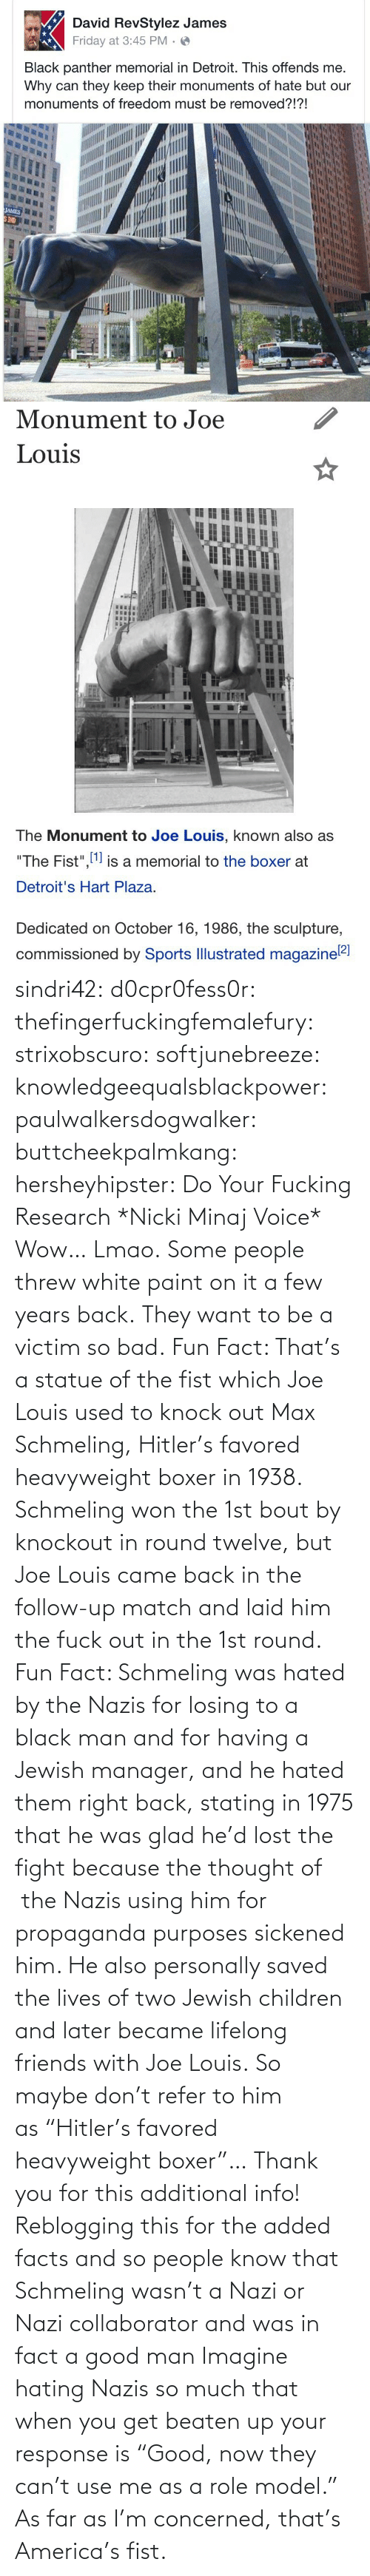 "fun: sindri42:  d0cpr0fess0r:  thefingerfuckingfemalefury:  strixobscuro:  softjunebreeze:  knowledgeequalsblackpower:  paulwalkersdogwalker:   buttcheekpalmkang:   hersheyhipster:  Do Your Fucking Research *Nicki Minaj Voice*    Wow… Lmao.   Some people threw white paint on it a few years back.   They want to be a victim so bad.  Fun Fact: That's a statue of the fist which Joe Louis used to knock out Max Schmeling, Hitler's favored heavyweight boxer in 1938. Schmeling won the 1st bout by knockout in round twelve, but Joe Louis came back in the follow-up match and laid him the fuck out in the 1st round.  Fun Fact: Schmeling was hated by the Nazis for losing to a black man and for having a Jewish manager, and he hated them right back, stating in 1975 that he was glad he'd lost the fight because the thought of  the Nazis using him for propaganda purposes sickened him. He also personally saved the lives of two Jewish children and later became lifelong friends with Joe Louis. So maybe don't refer to him as ""Hitler's favored heavyweight boxer""…  Thank you for this additional info! Reblogging this for the added facts and so people know that Schmeling wasn't a Nazi or Nazi collaborator and was in fact a good man   Imagine hating Nazis so much that when you get beaten up your response is ""Good, now they can't use me as a role model.""  As far as I'm concerned, that's America's fist."